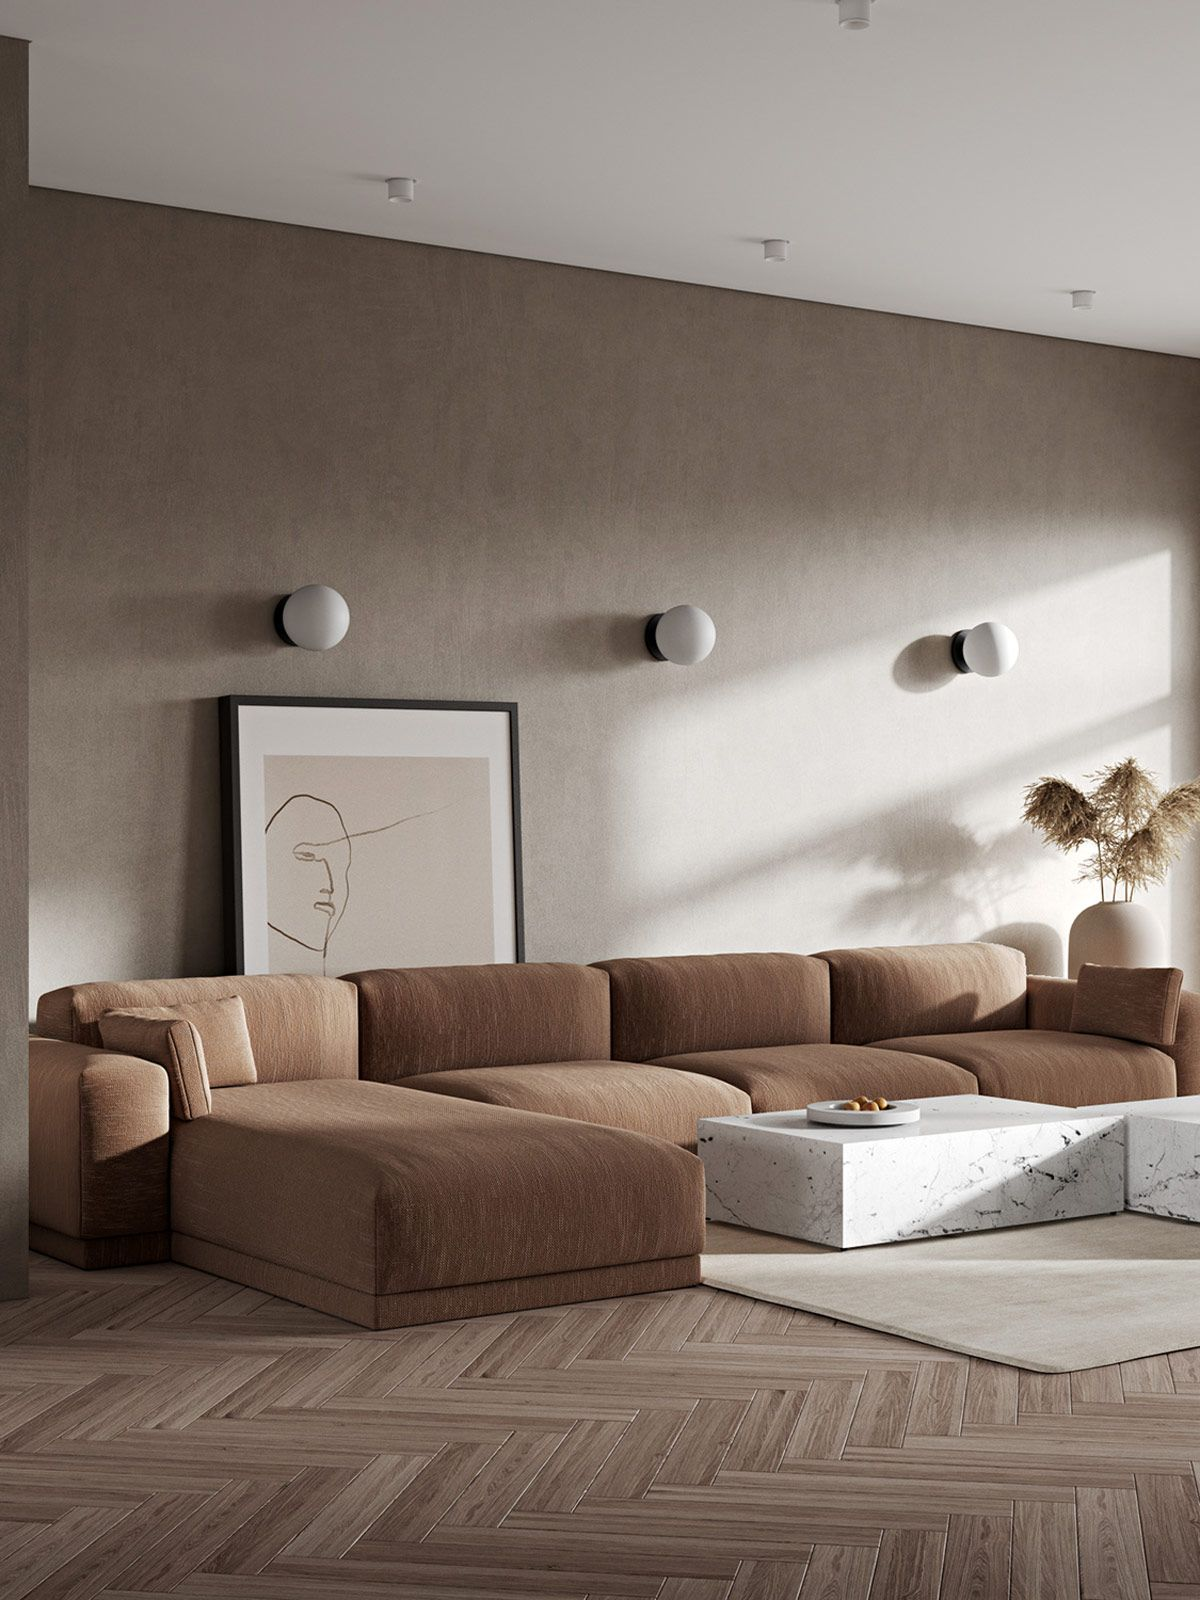 Photo of Introducing Depth, Warmth & Interesting Furniture Into Flat Spaces